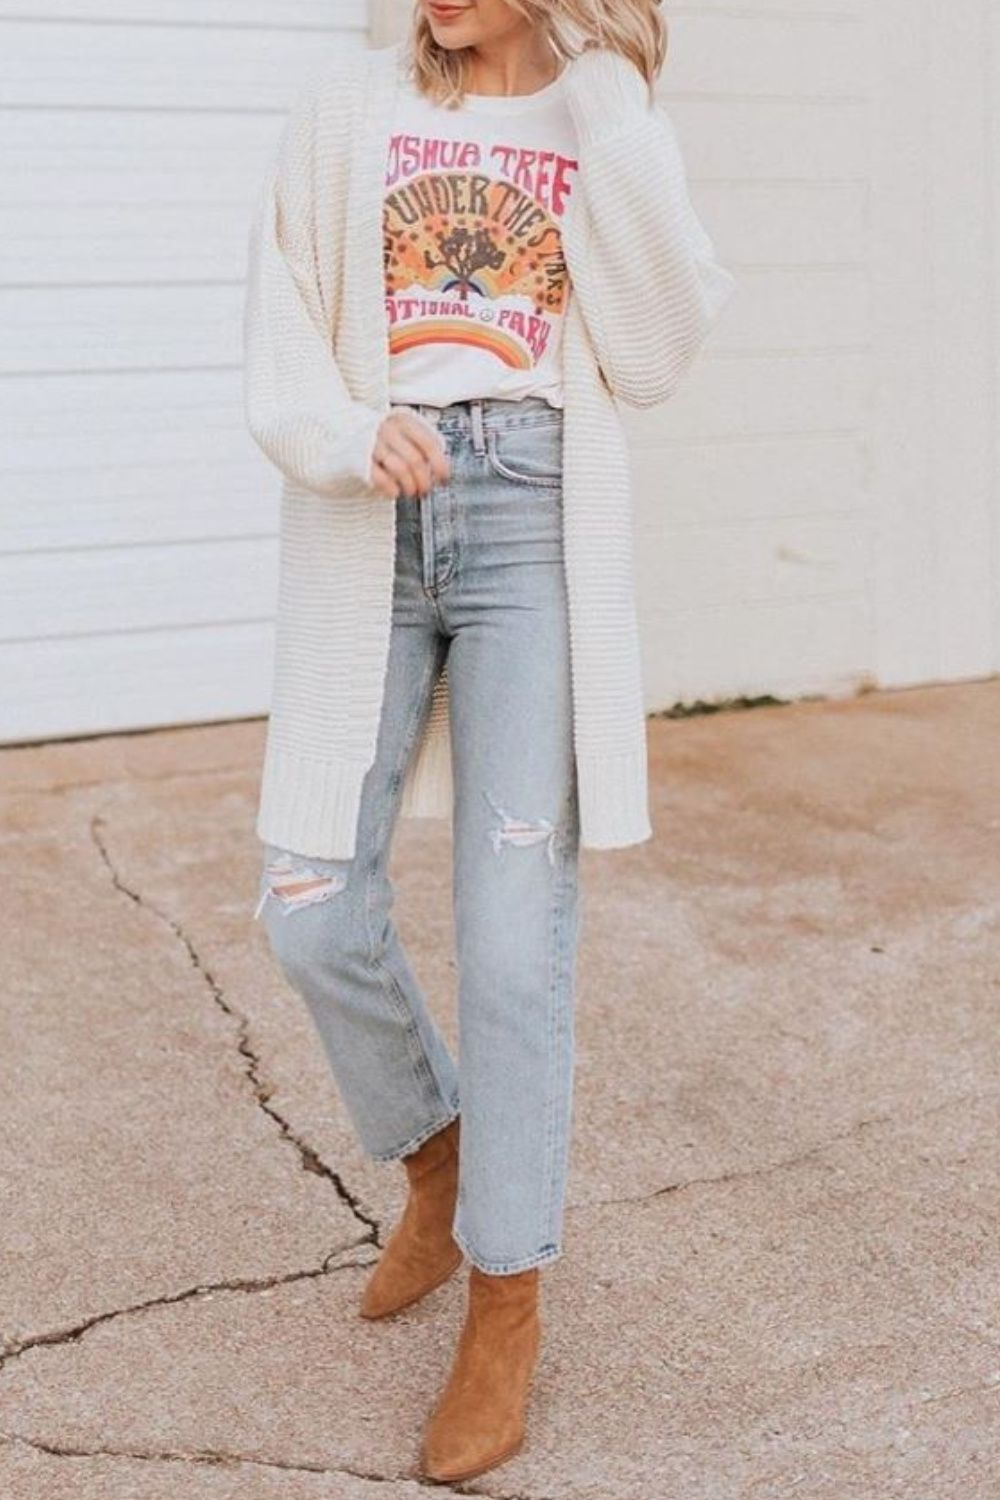 How to Wear a Cardigan: 8 Super Cute Styling Ideas